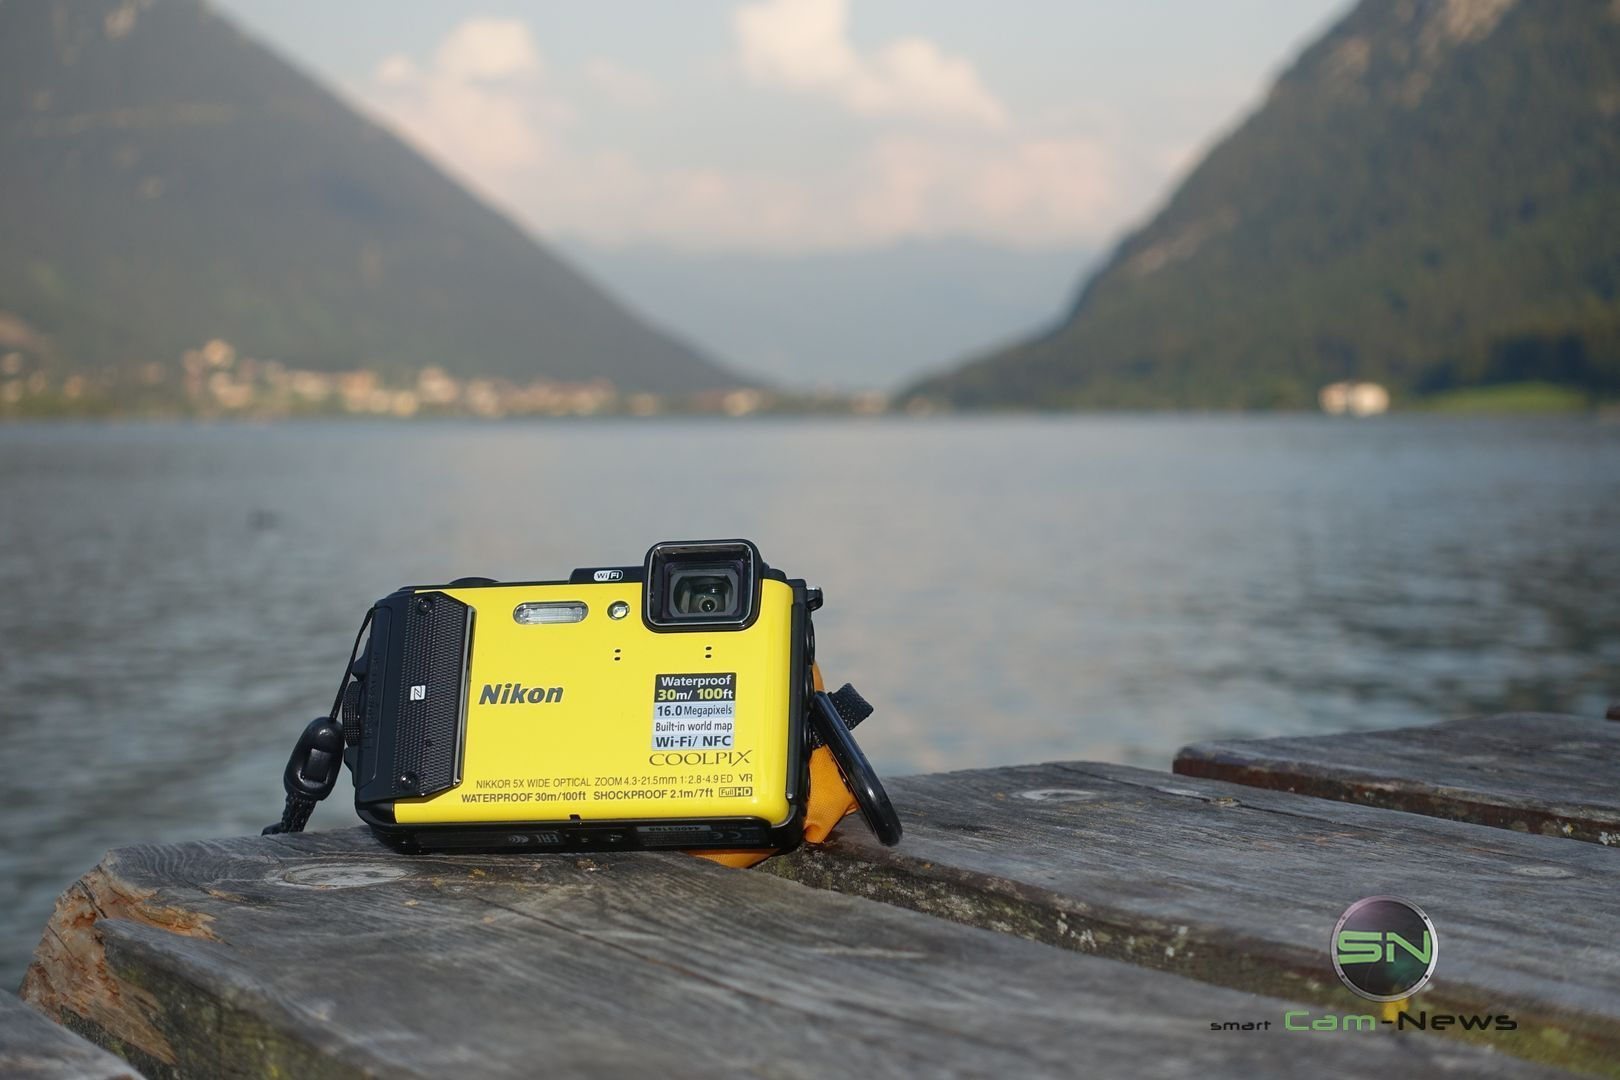 Nikon AW130 - Achensee Diving - SmartCamNews